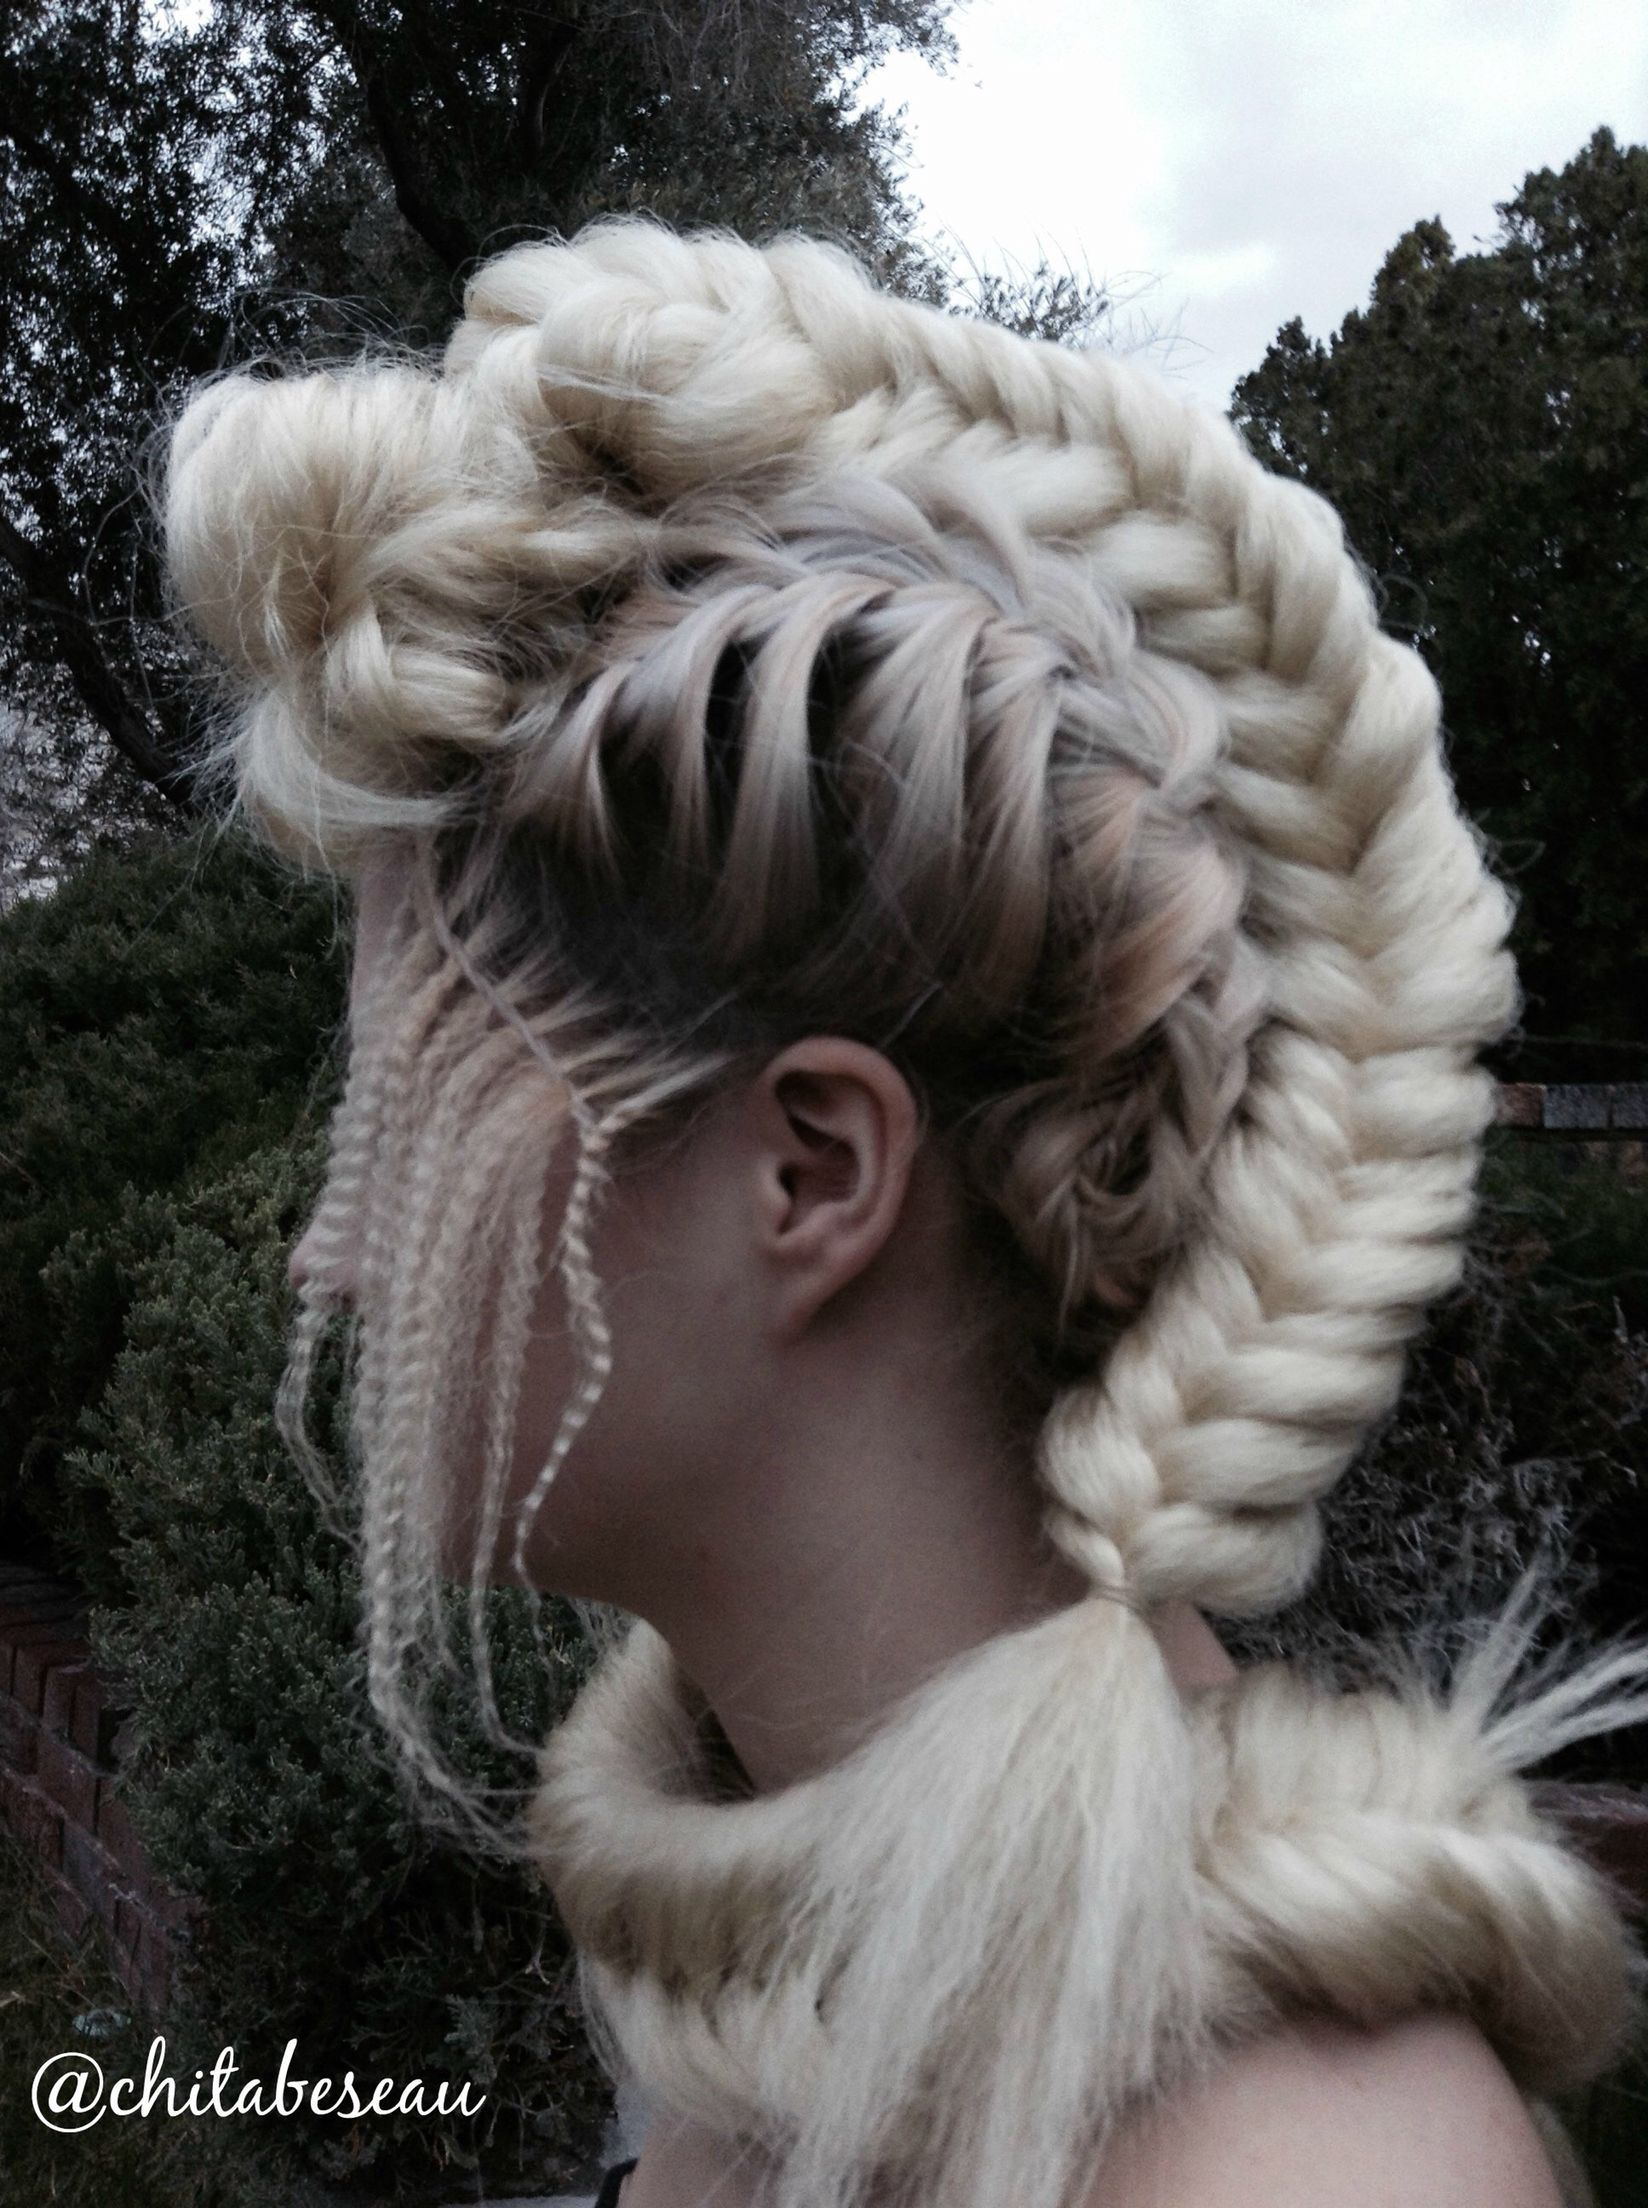 Platinum blonde hair wrapped into an intricate braid design by chita